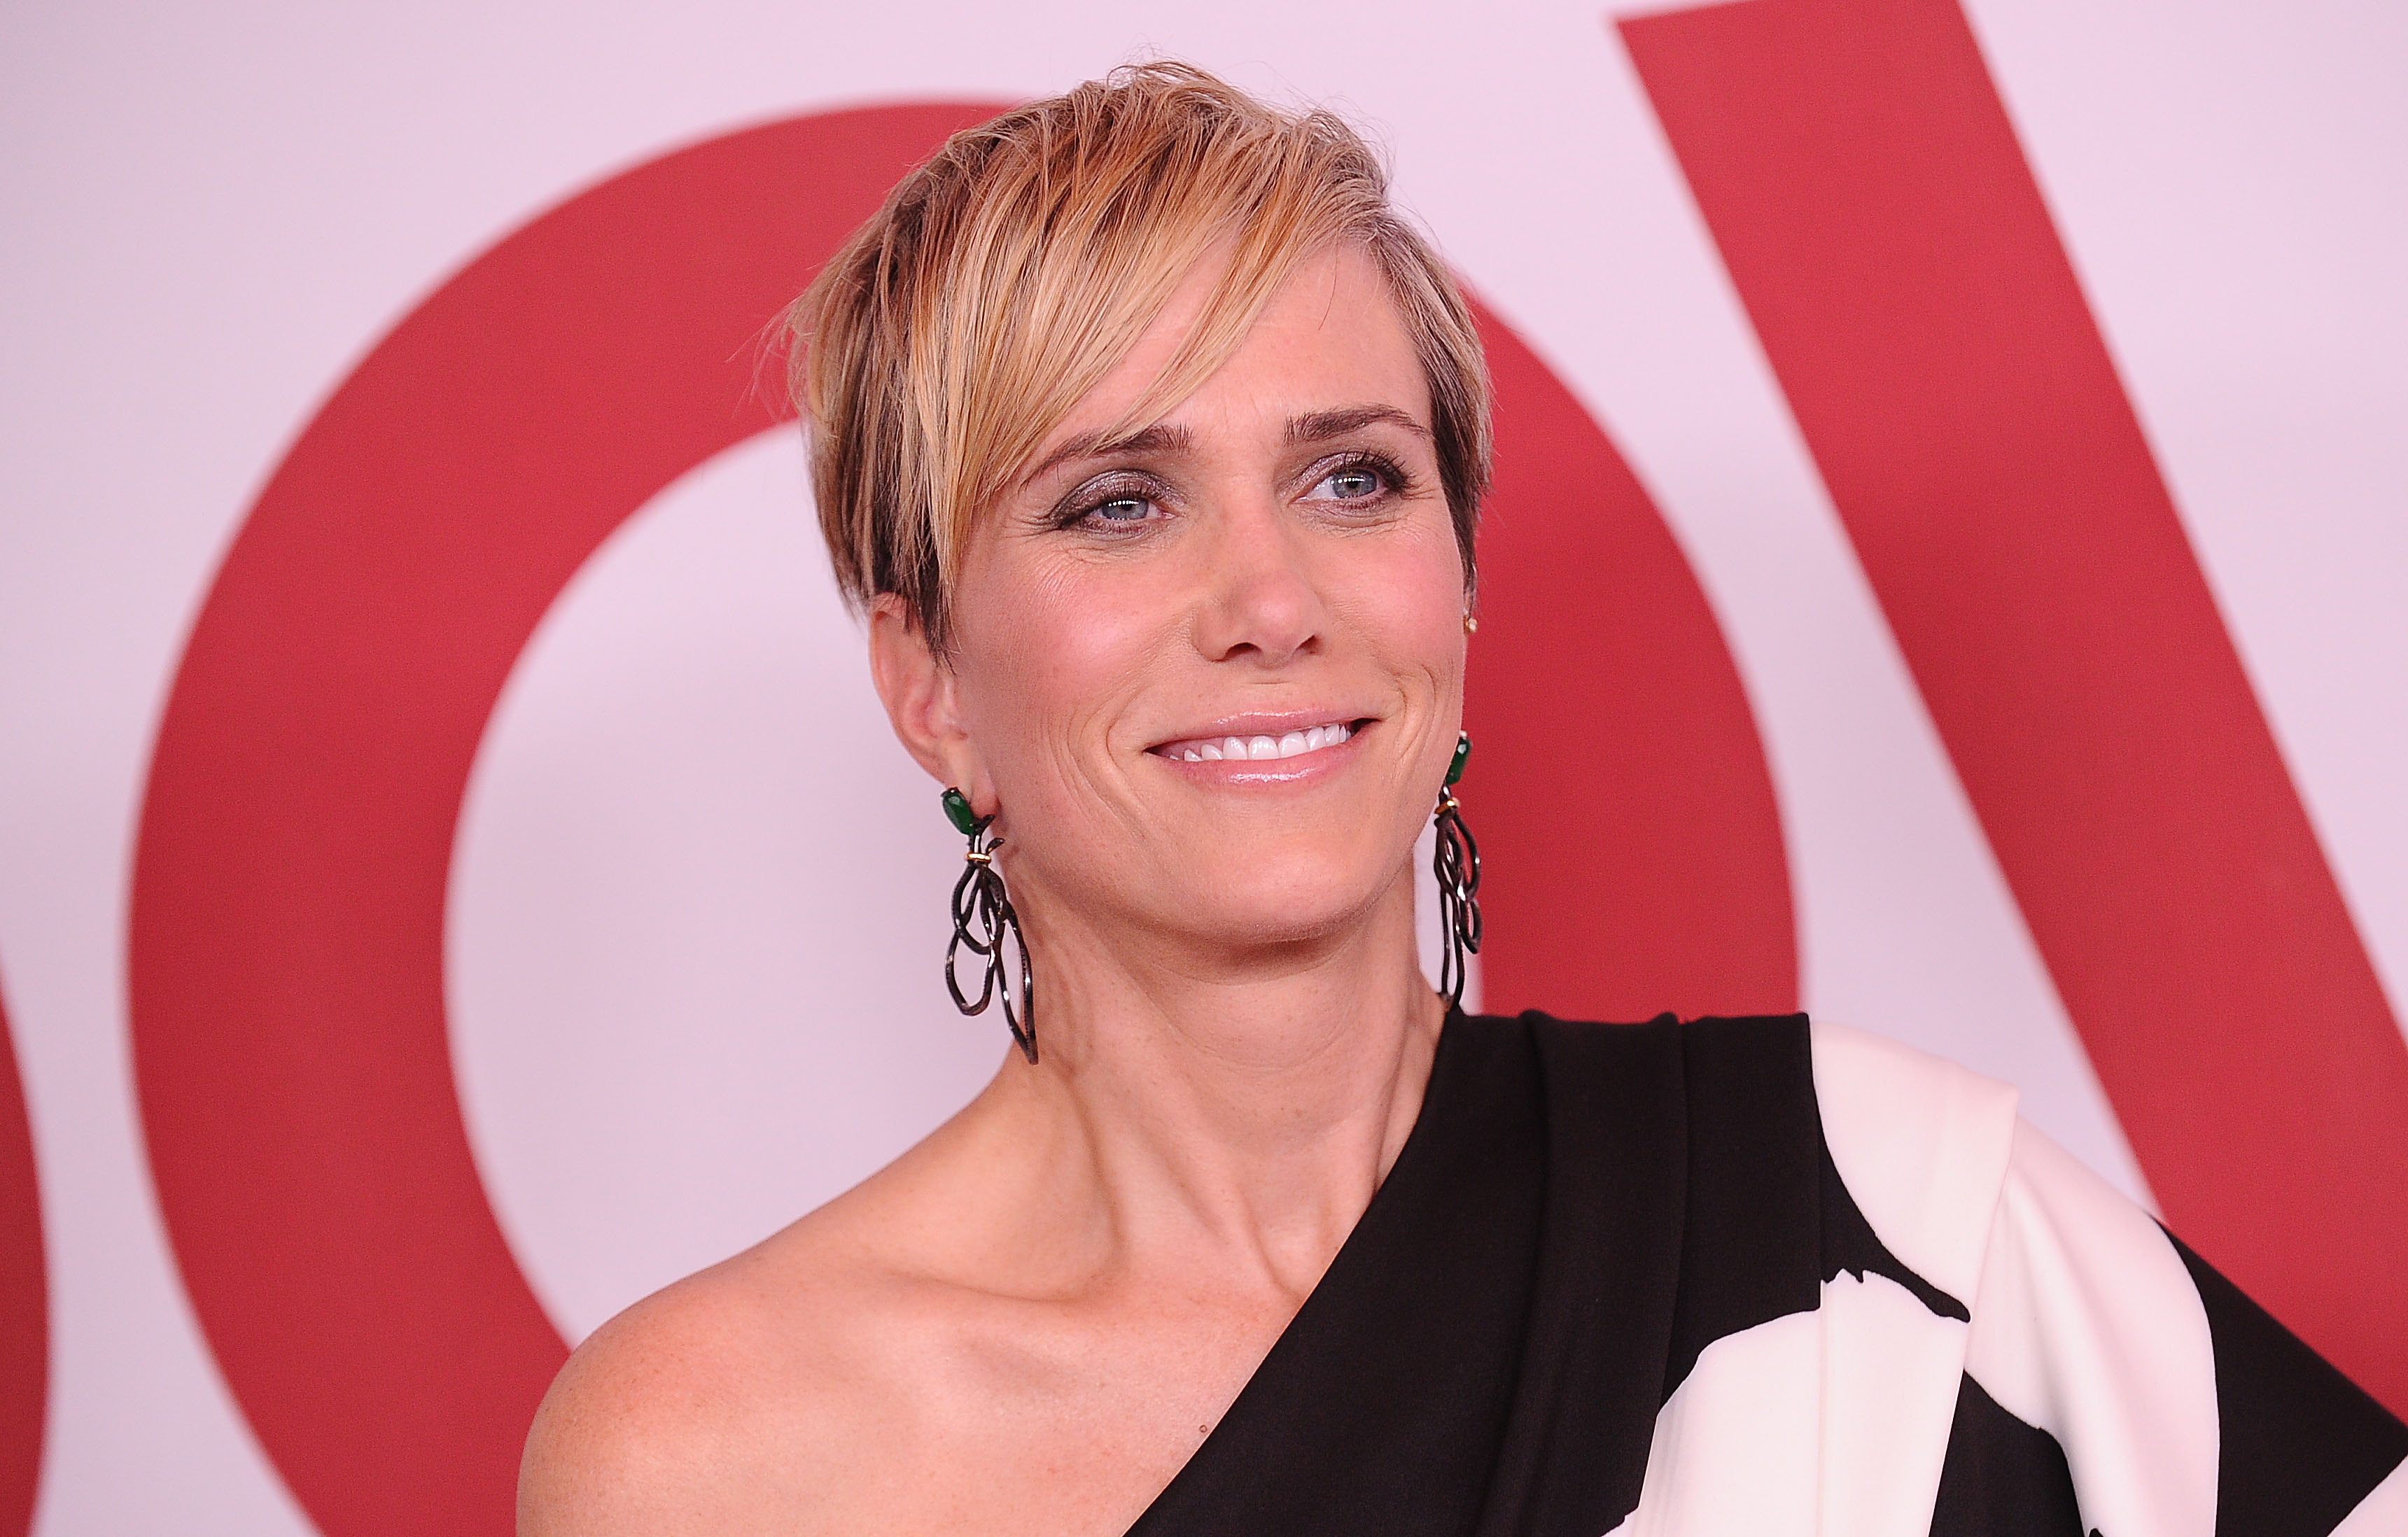 Apple greenlights new Reese Witherspoon-backed comedy series starring Kristen Wiig